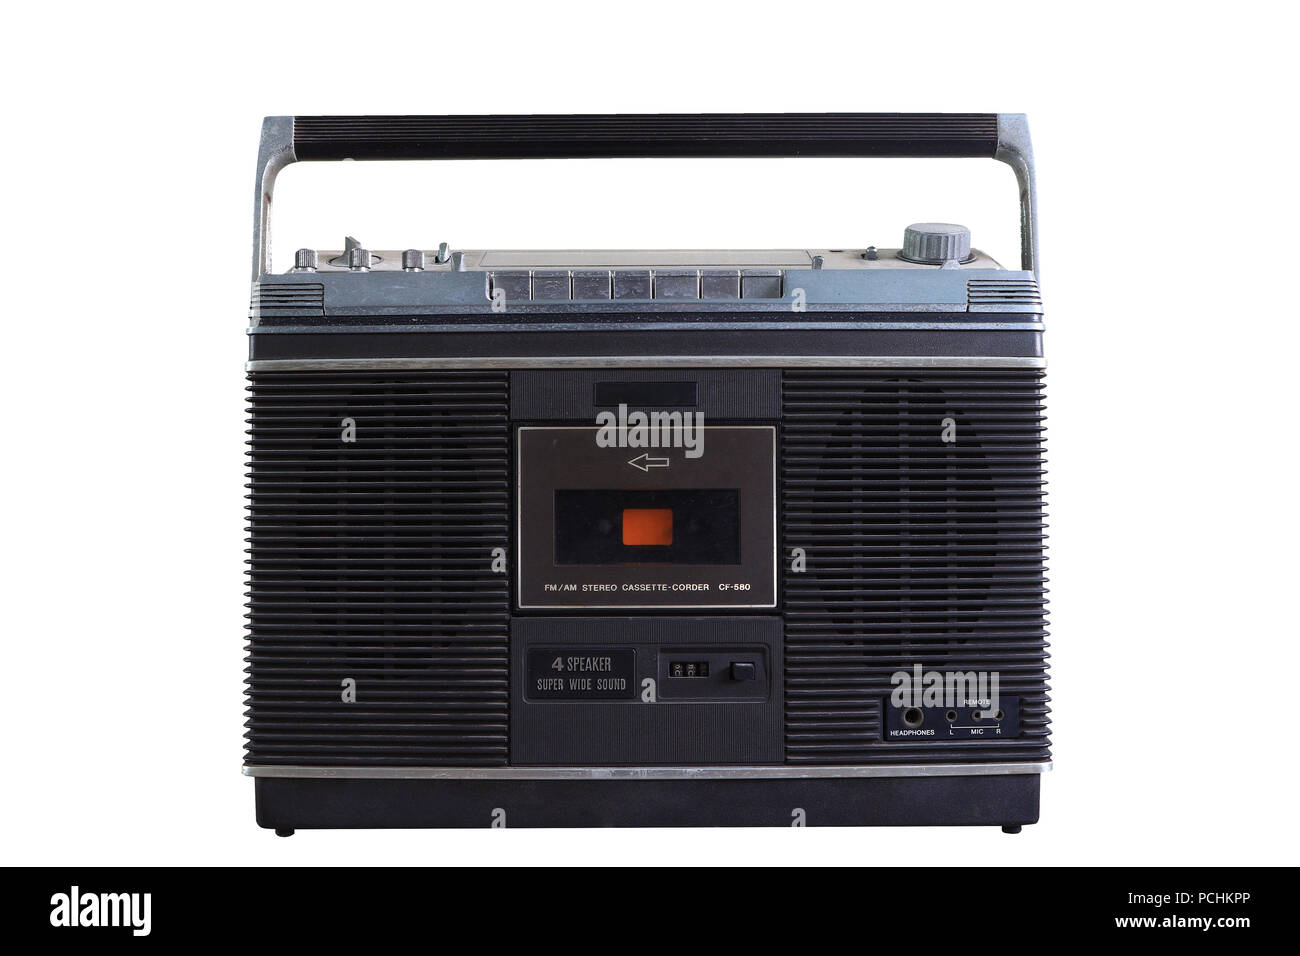 Retro cassette recorder radio isolated on white background, picture have clipping path. - Stock Image